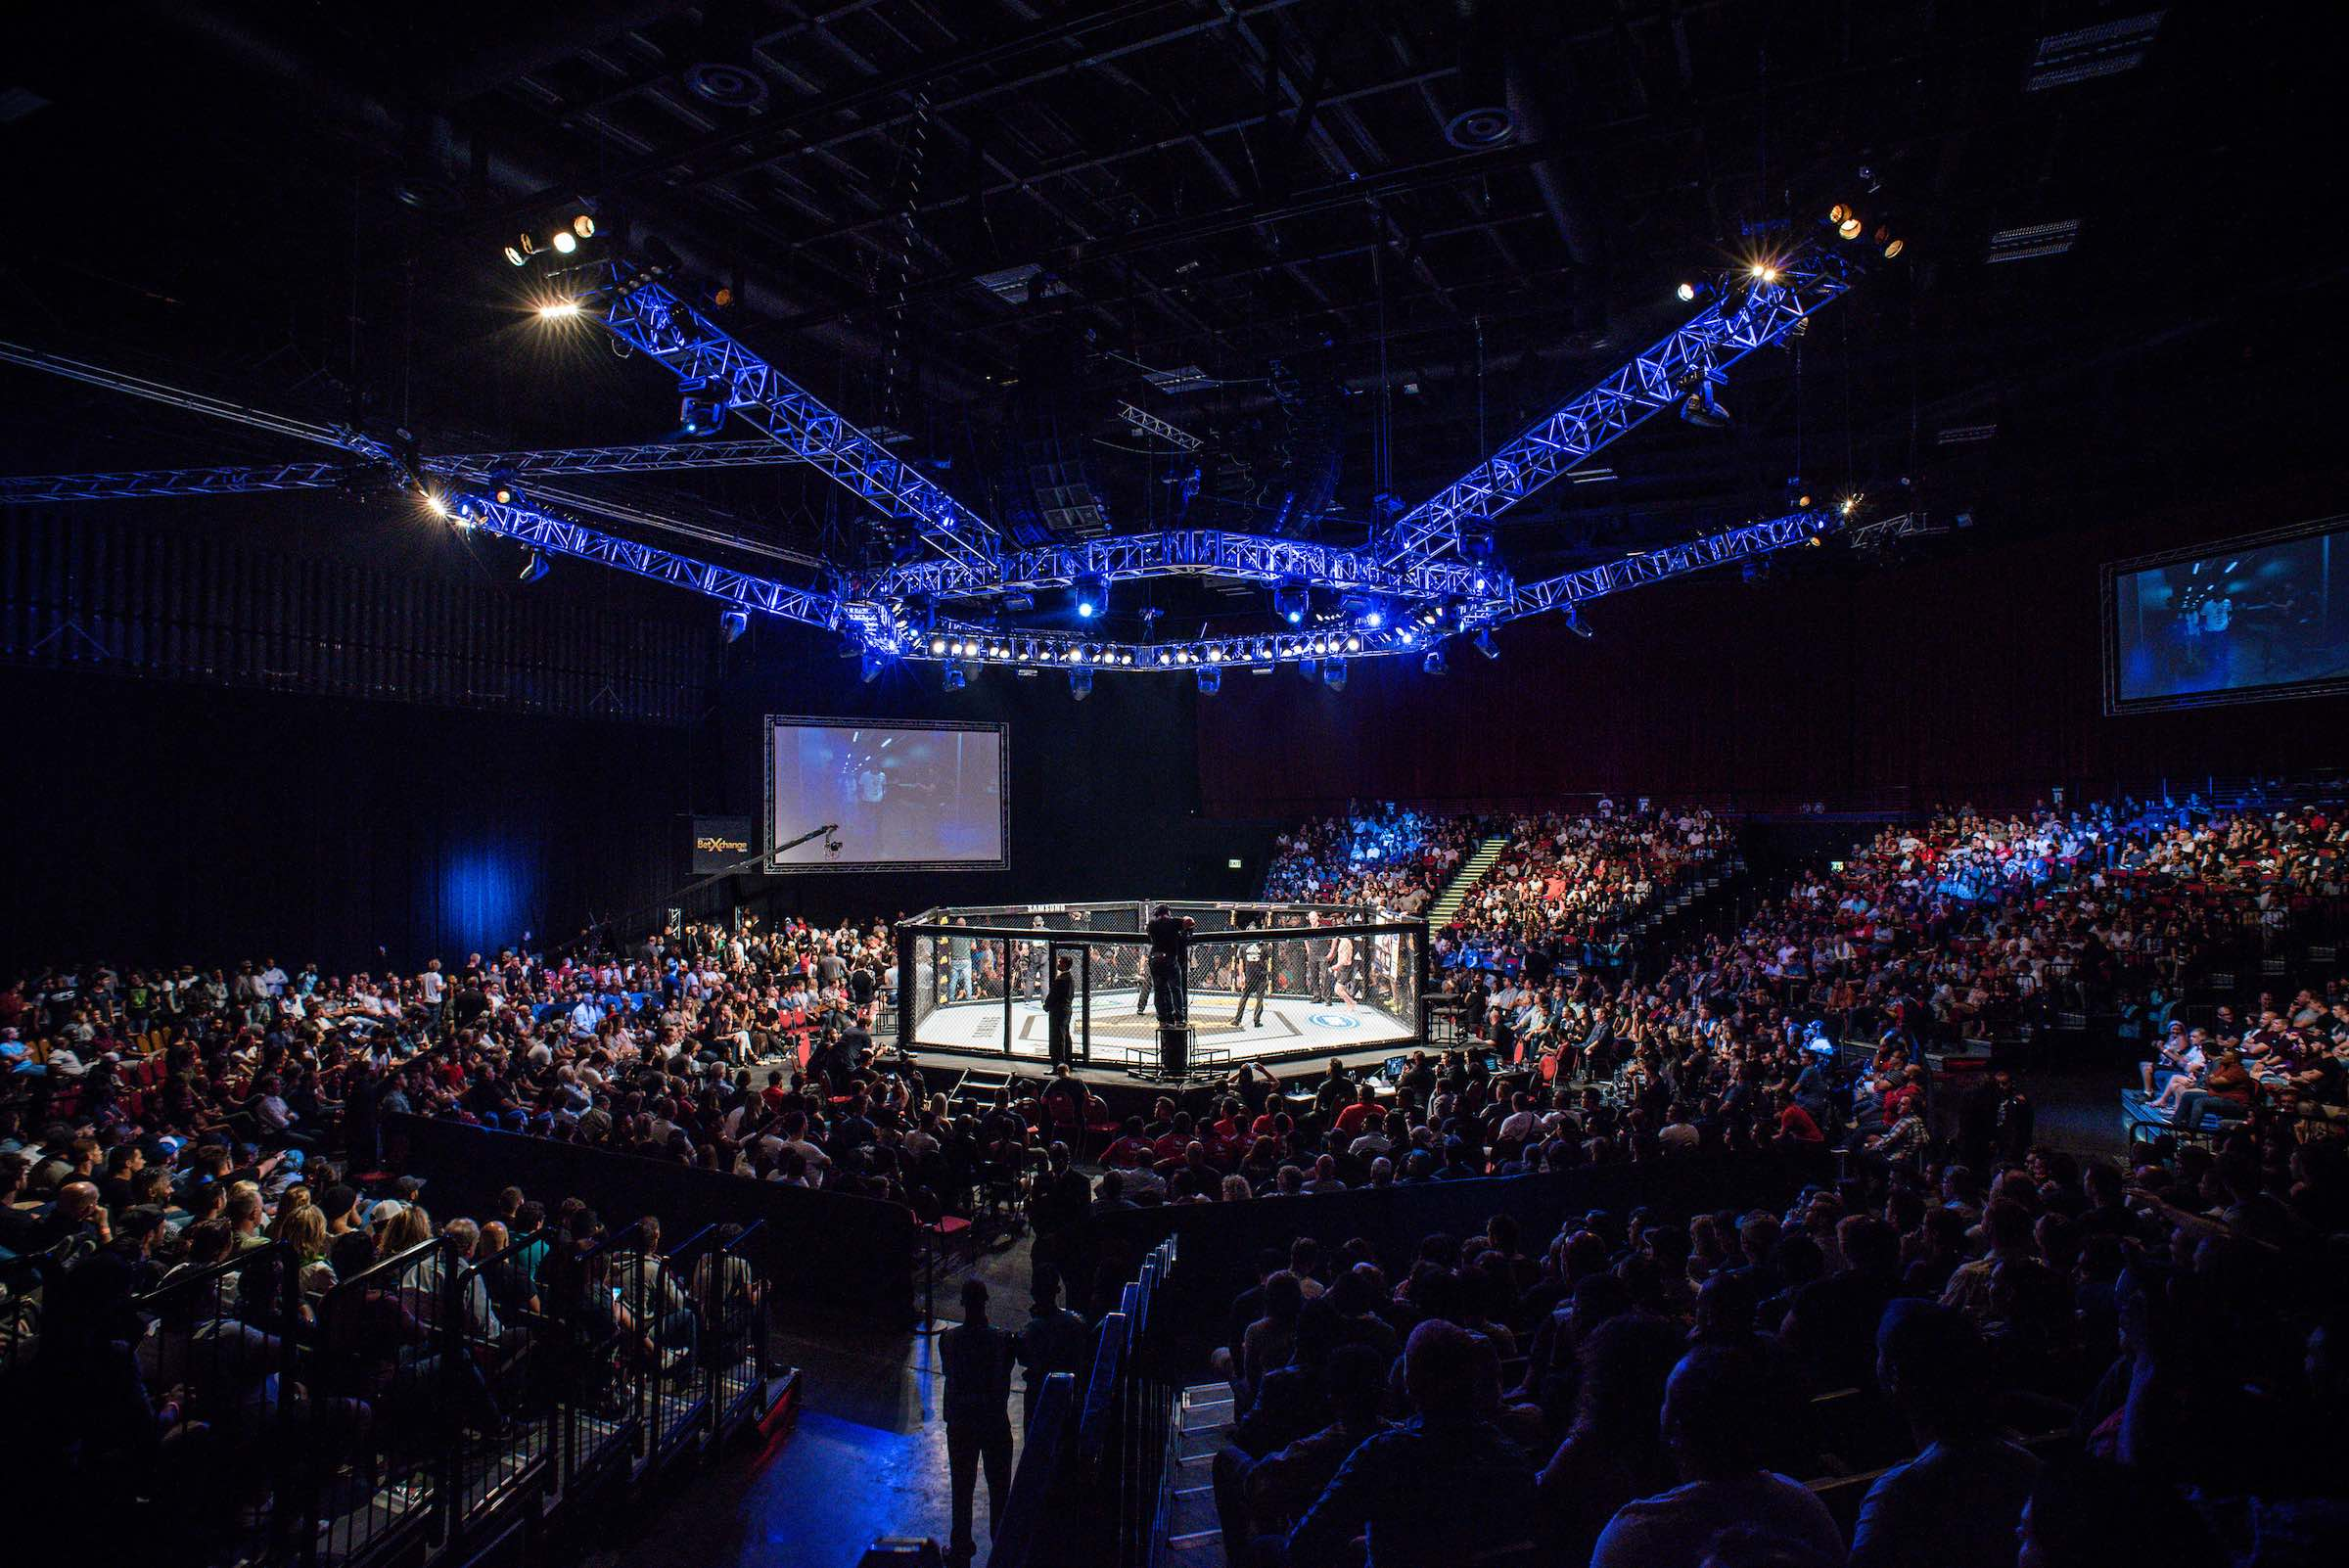 EFC 58 produced an exciting night of Mixed Martial Arts Action in Cape Town